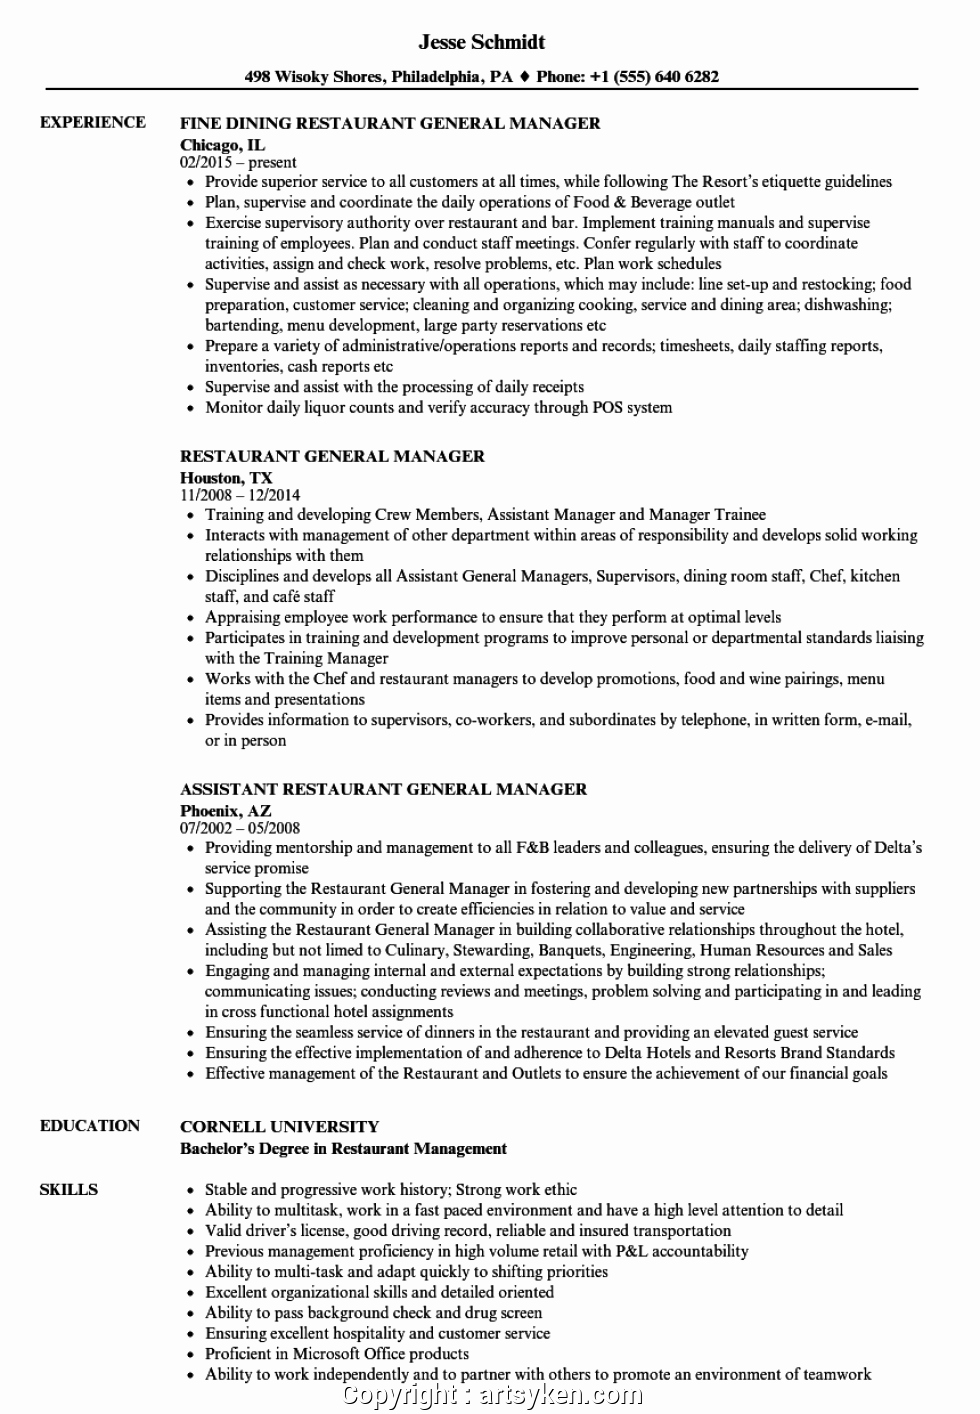 Restaurant General Manager Resume Example Elegant Executive Restaurant General Manager Duties Resume